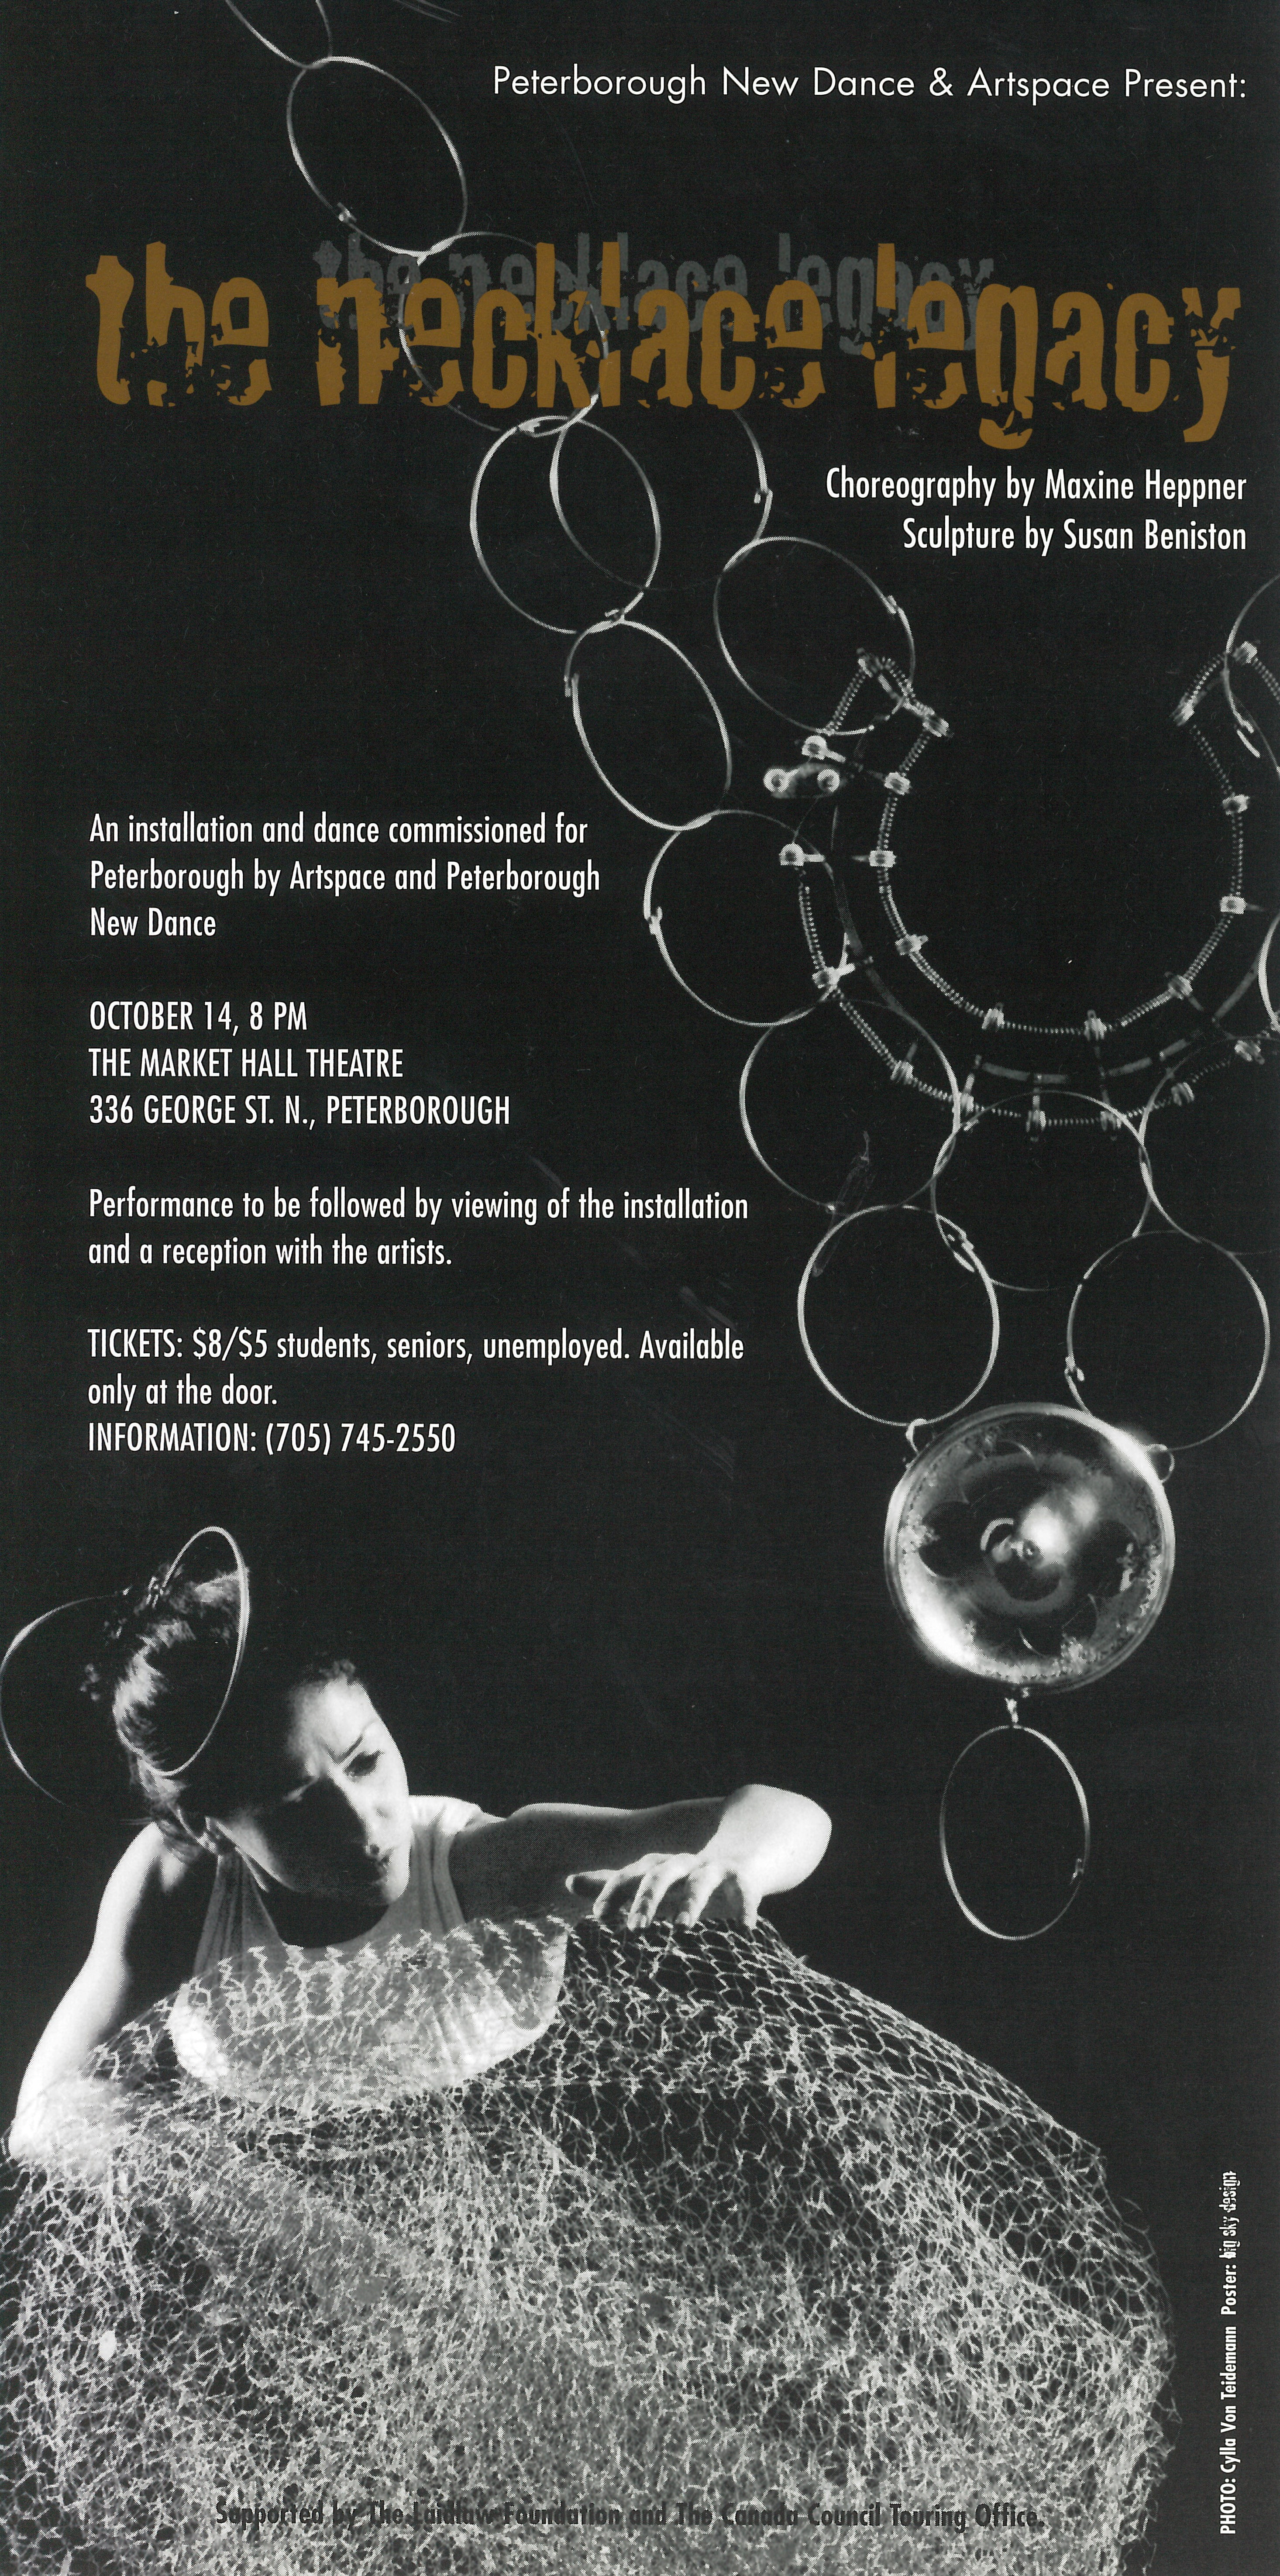 The Necklace Legacy Poster for The Necklace Legacy: A woman in a fancy dress grabs at a dangling necklace in the photo.